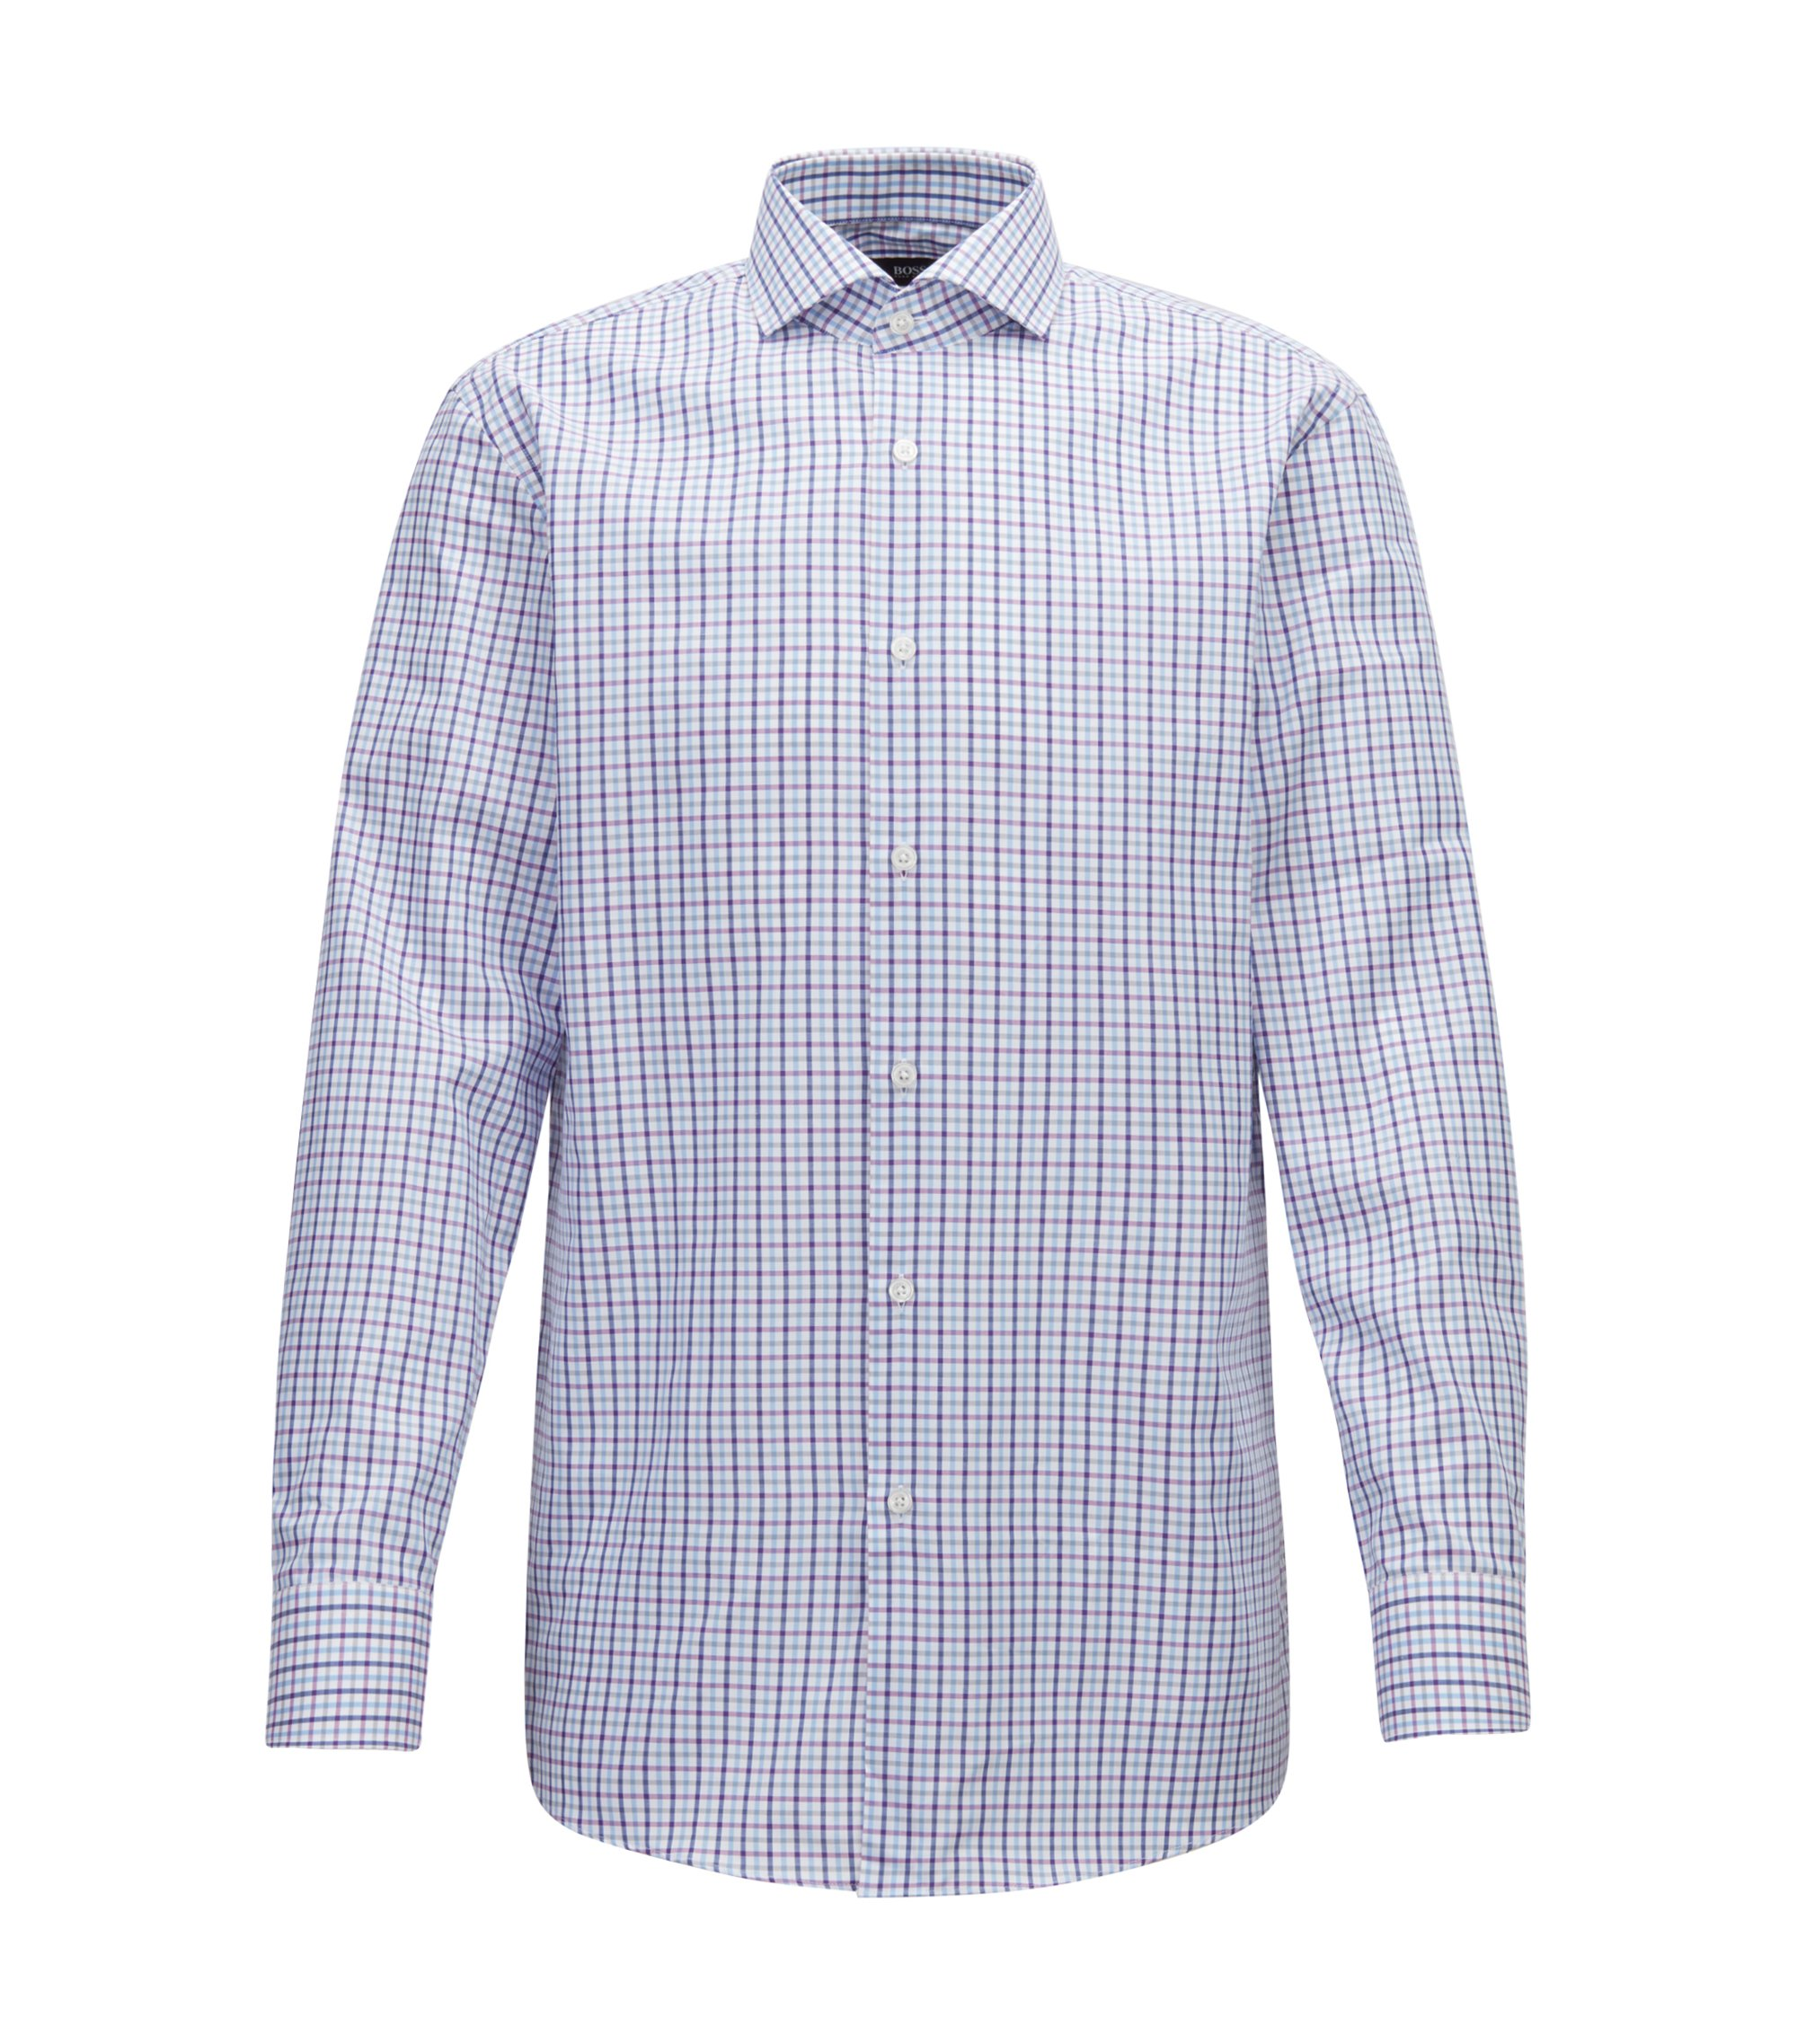 Slim-fit shirt in Oxford cotton with gingham check, Dark pink